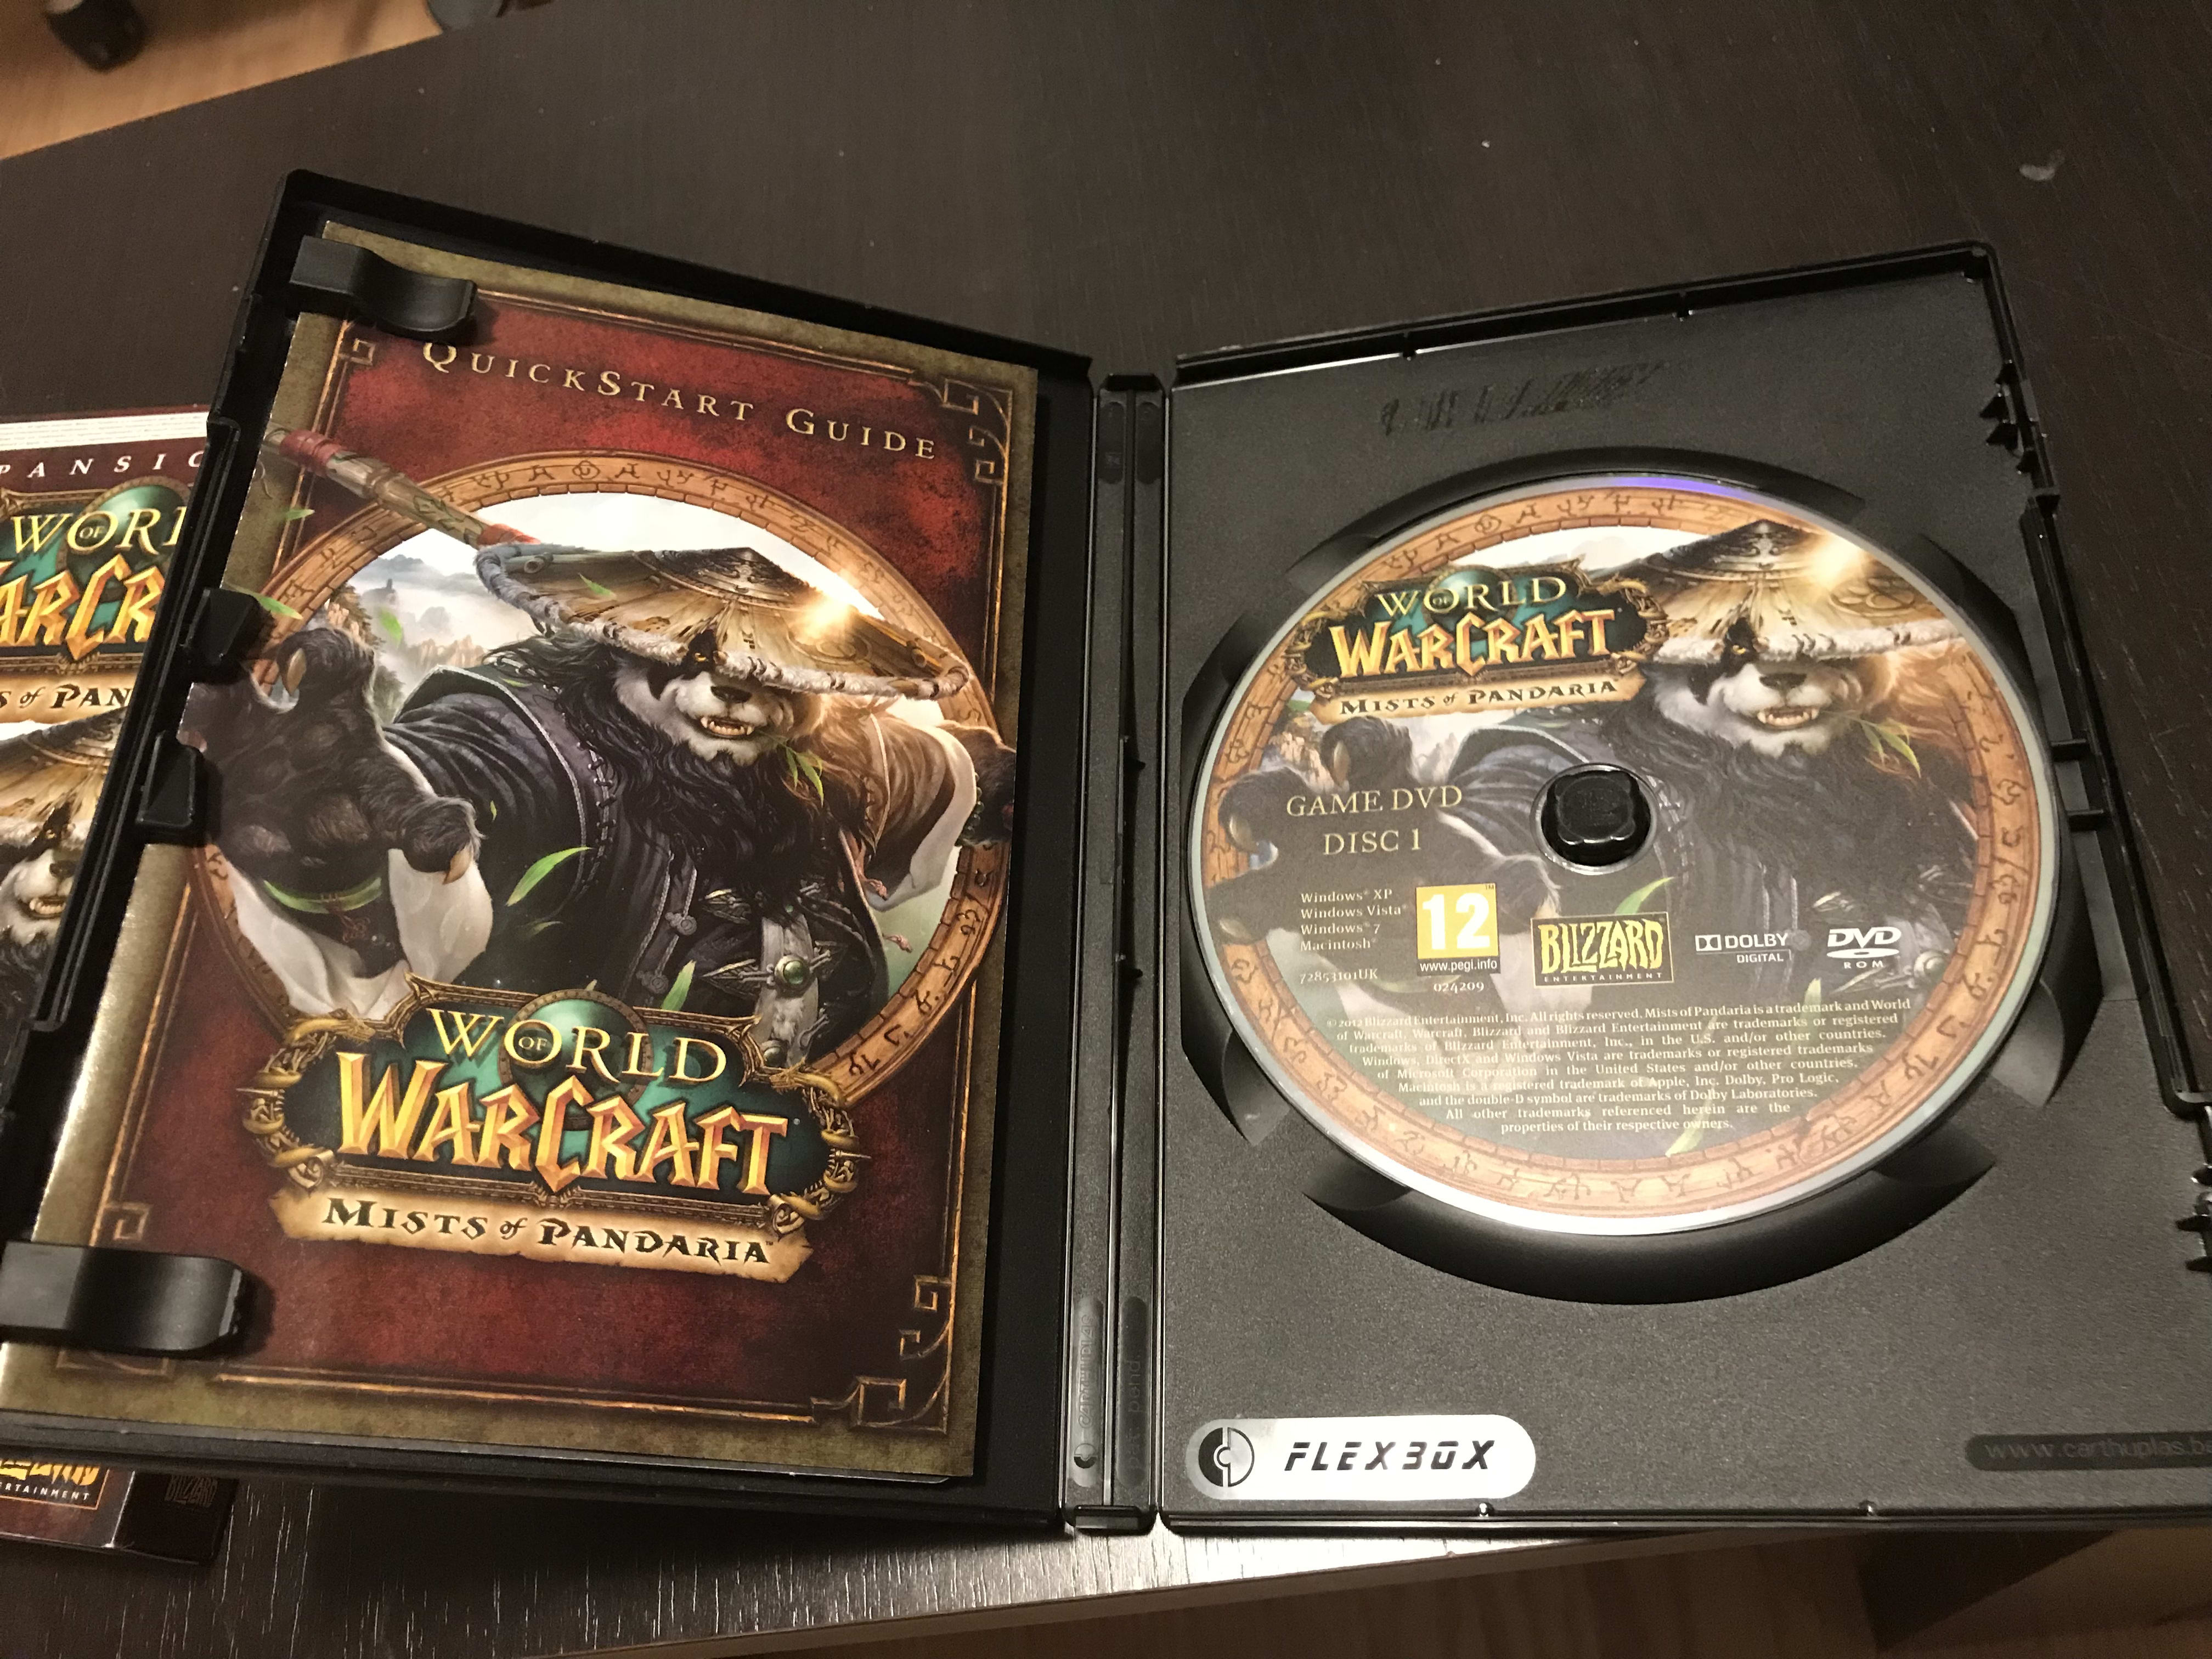 Picture 4 for World of Warcraft collectible boxes